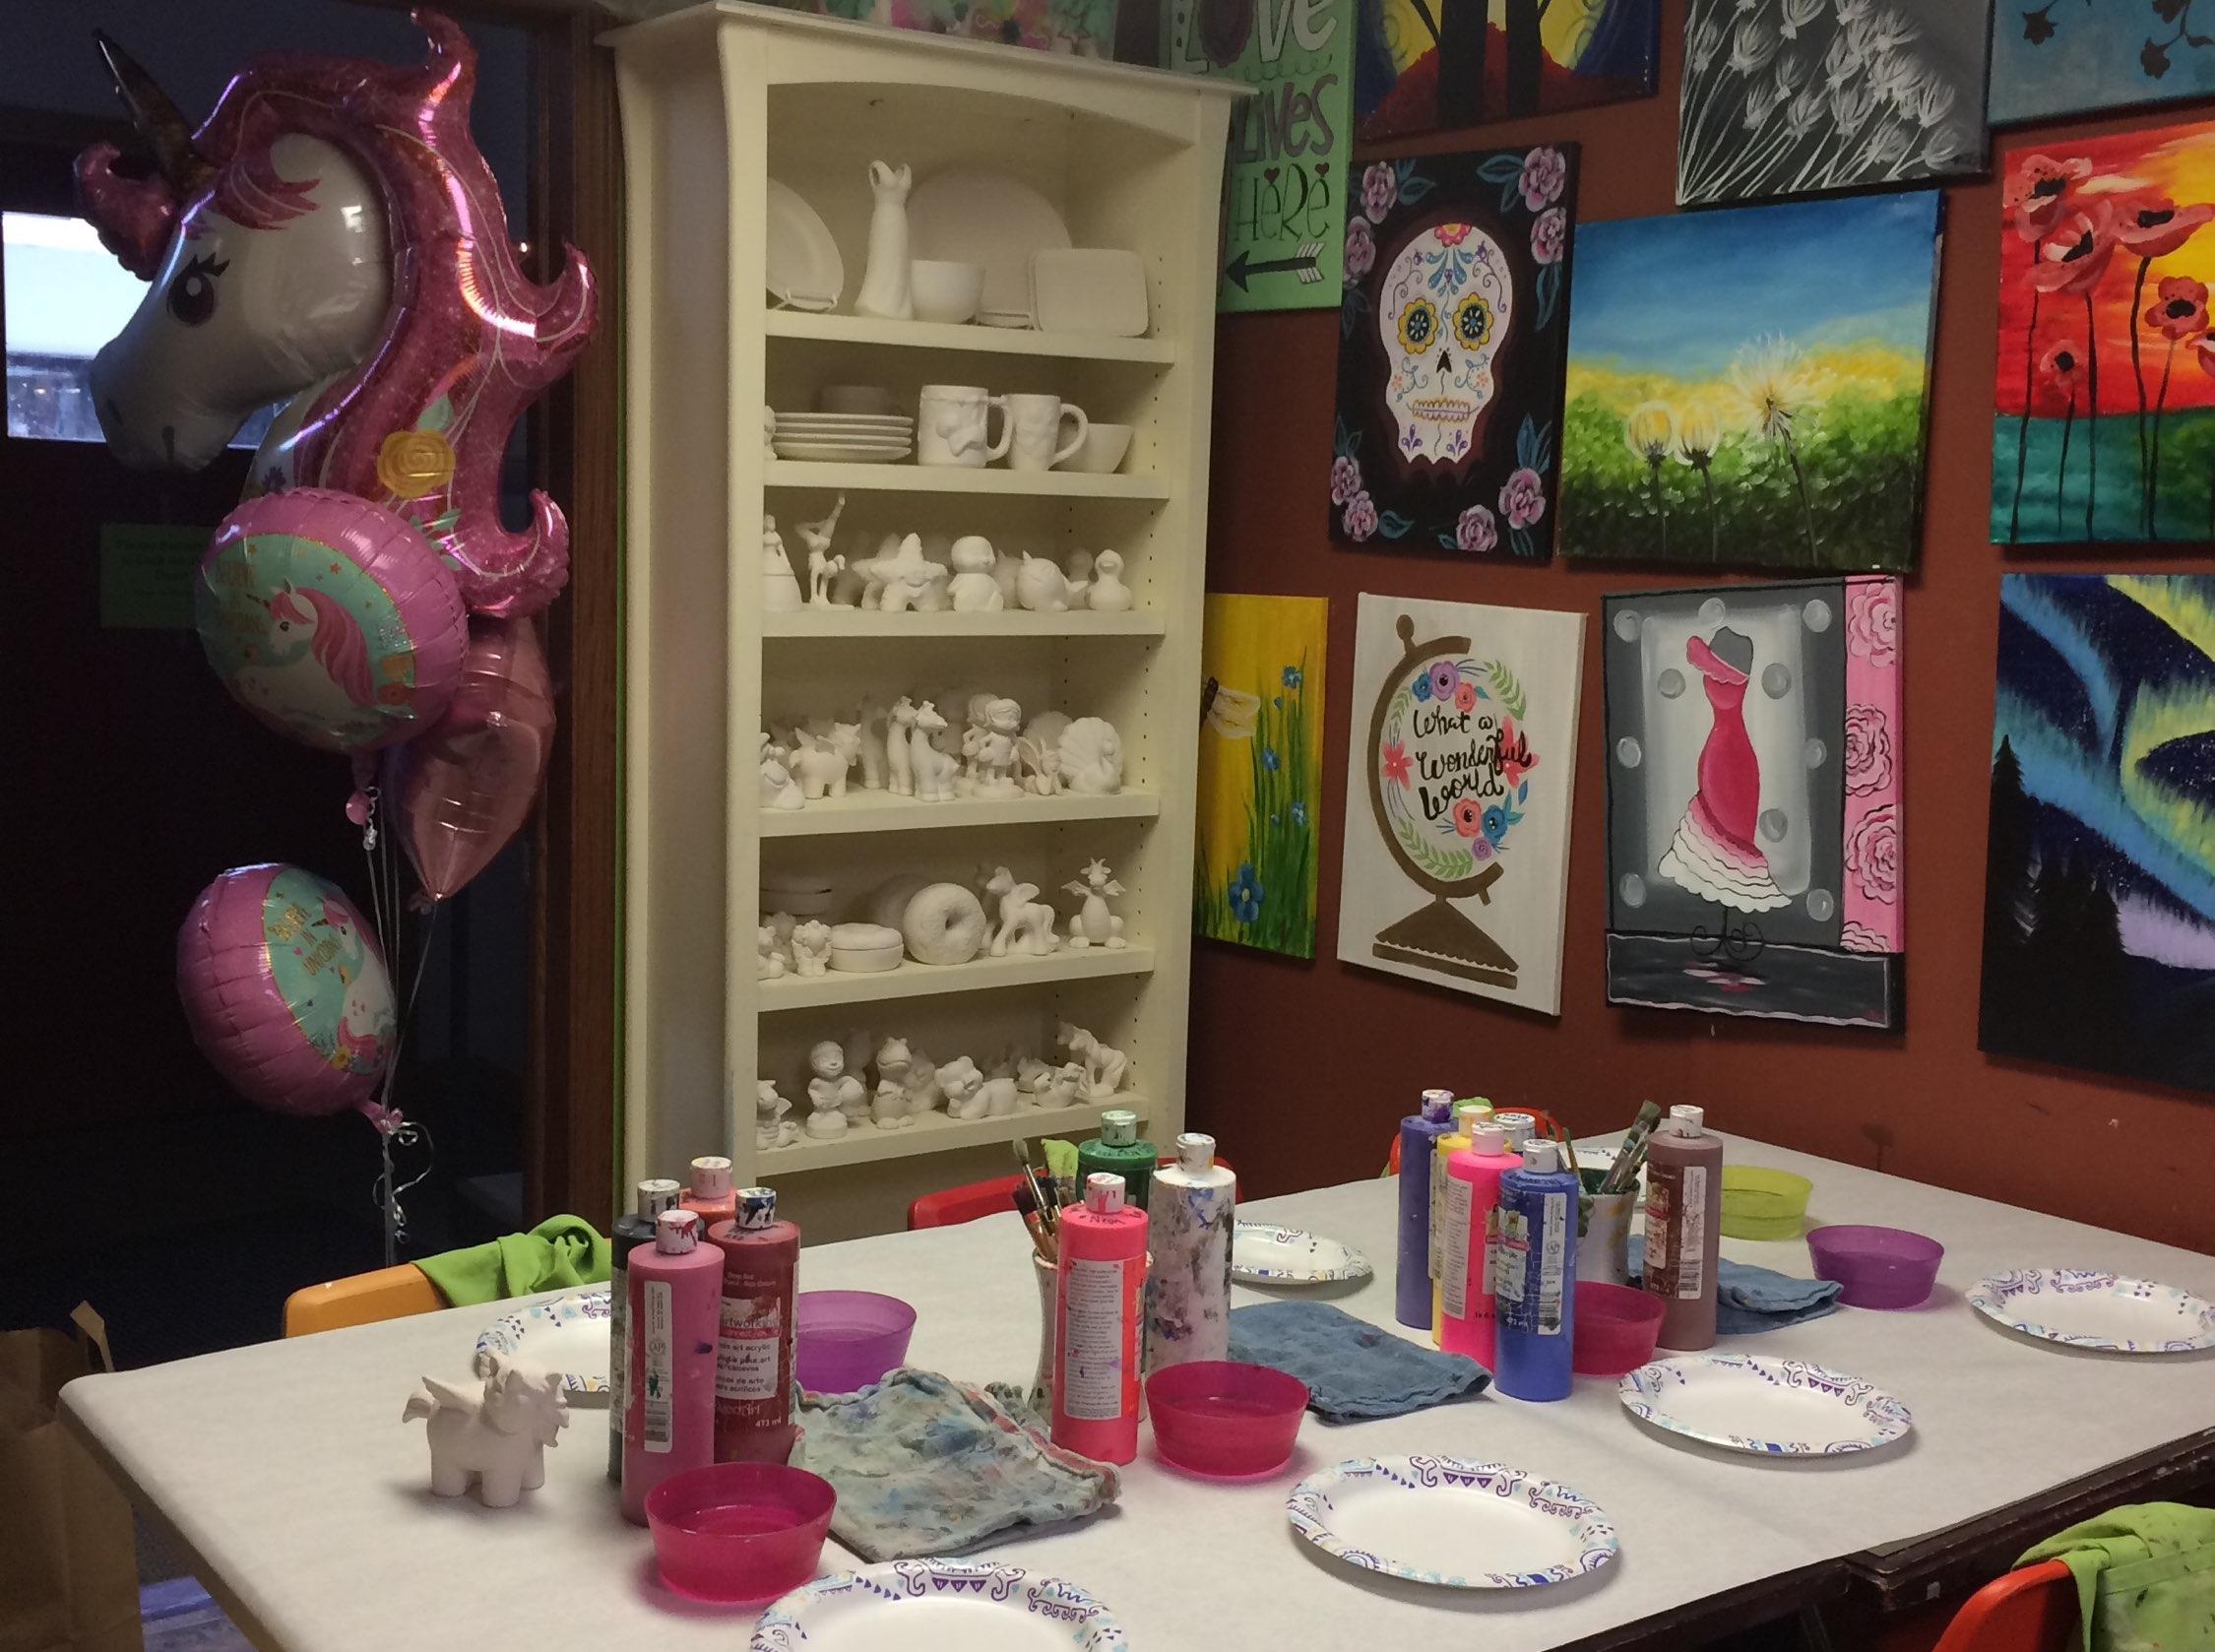 SCOUTS! - We love to party at KCAP Studio and we know how great our kid's troops are!! Have the Scouts come together to express their creativity while earning some art badges!